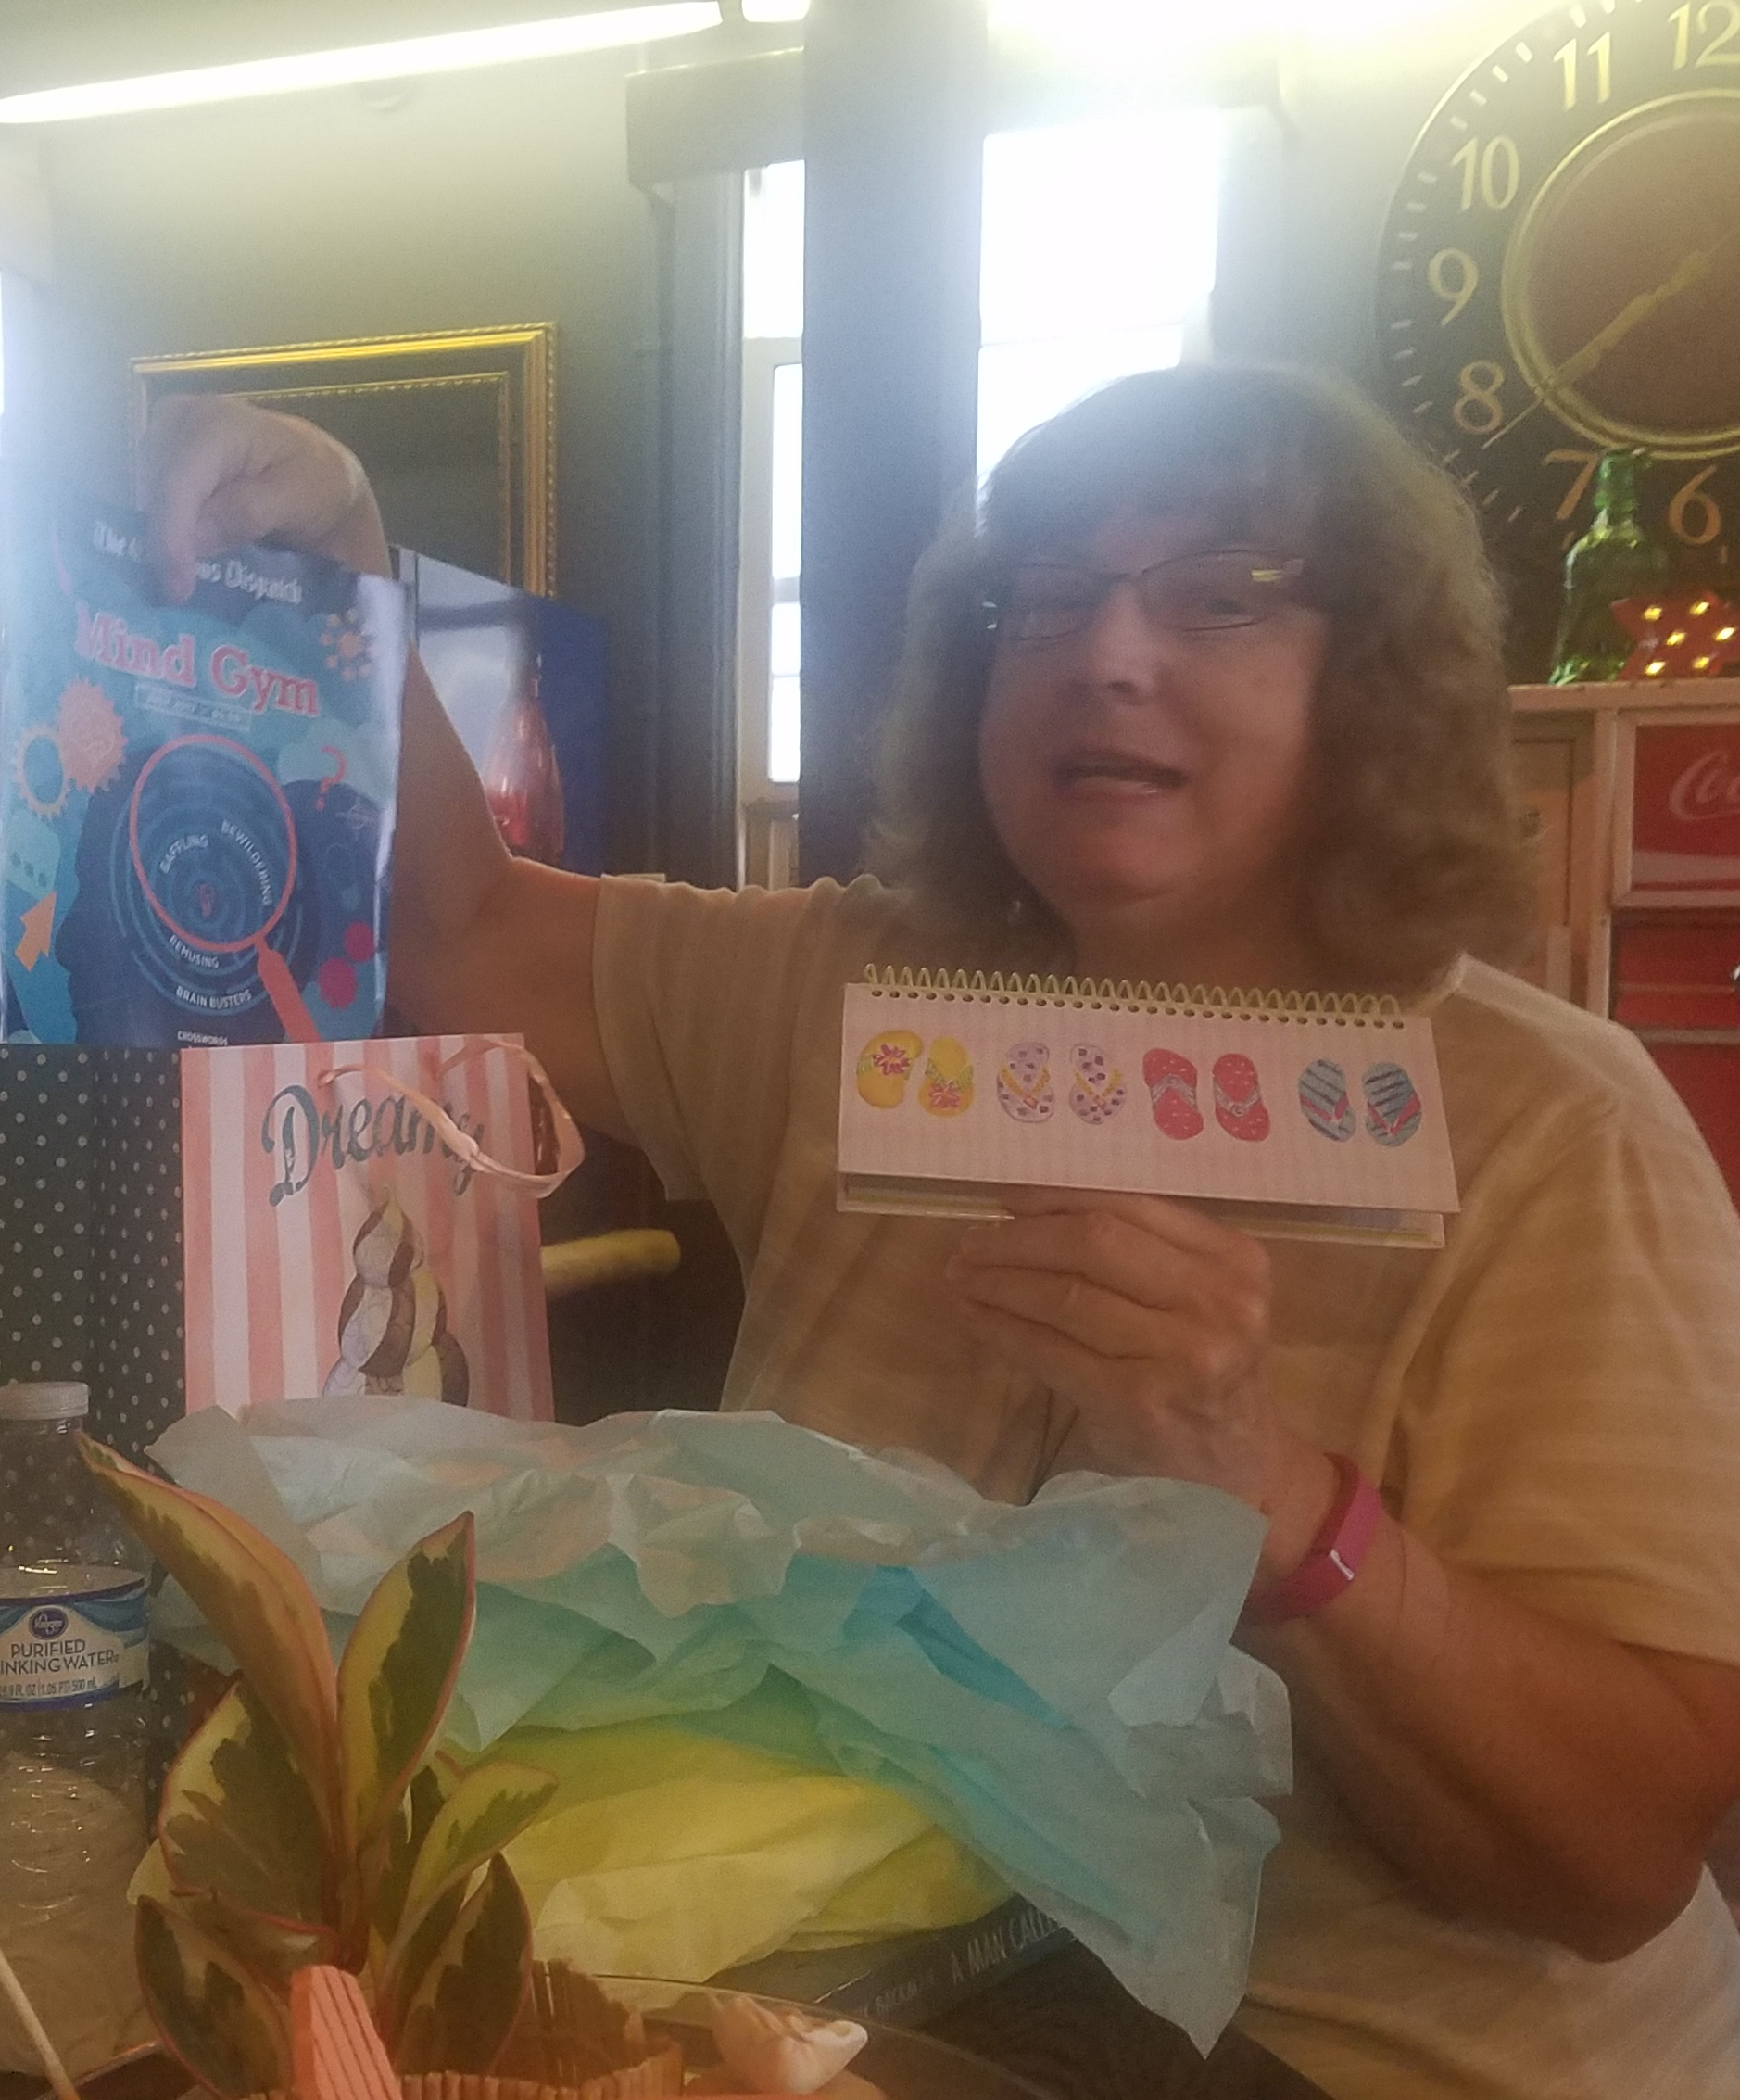 Pam Recko was the lucky winner fot the prize at the August 'Around Town' Book Club meeting.